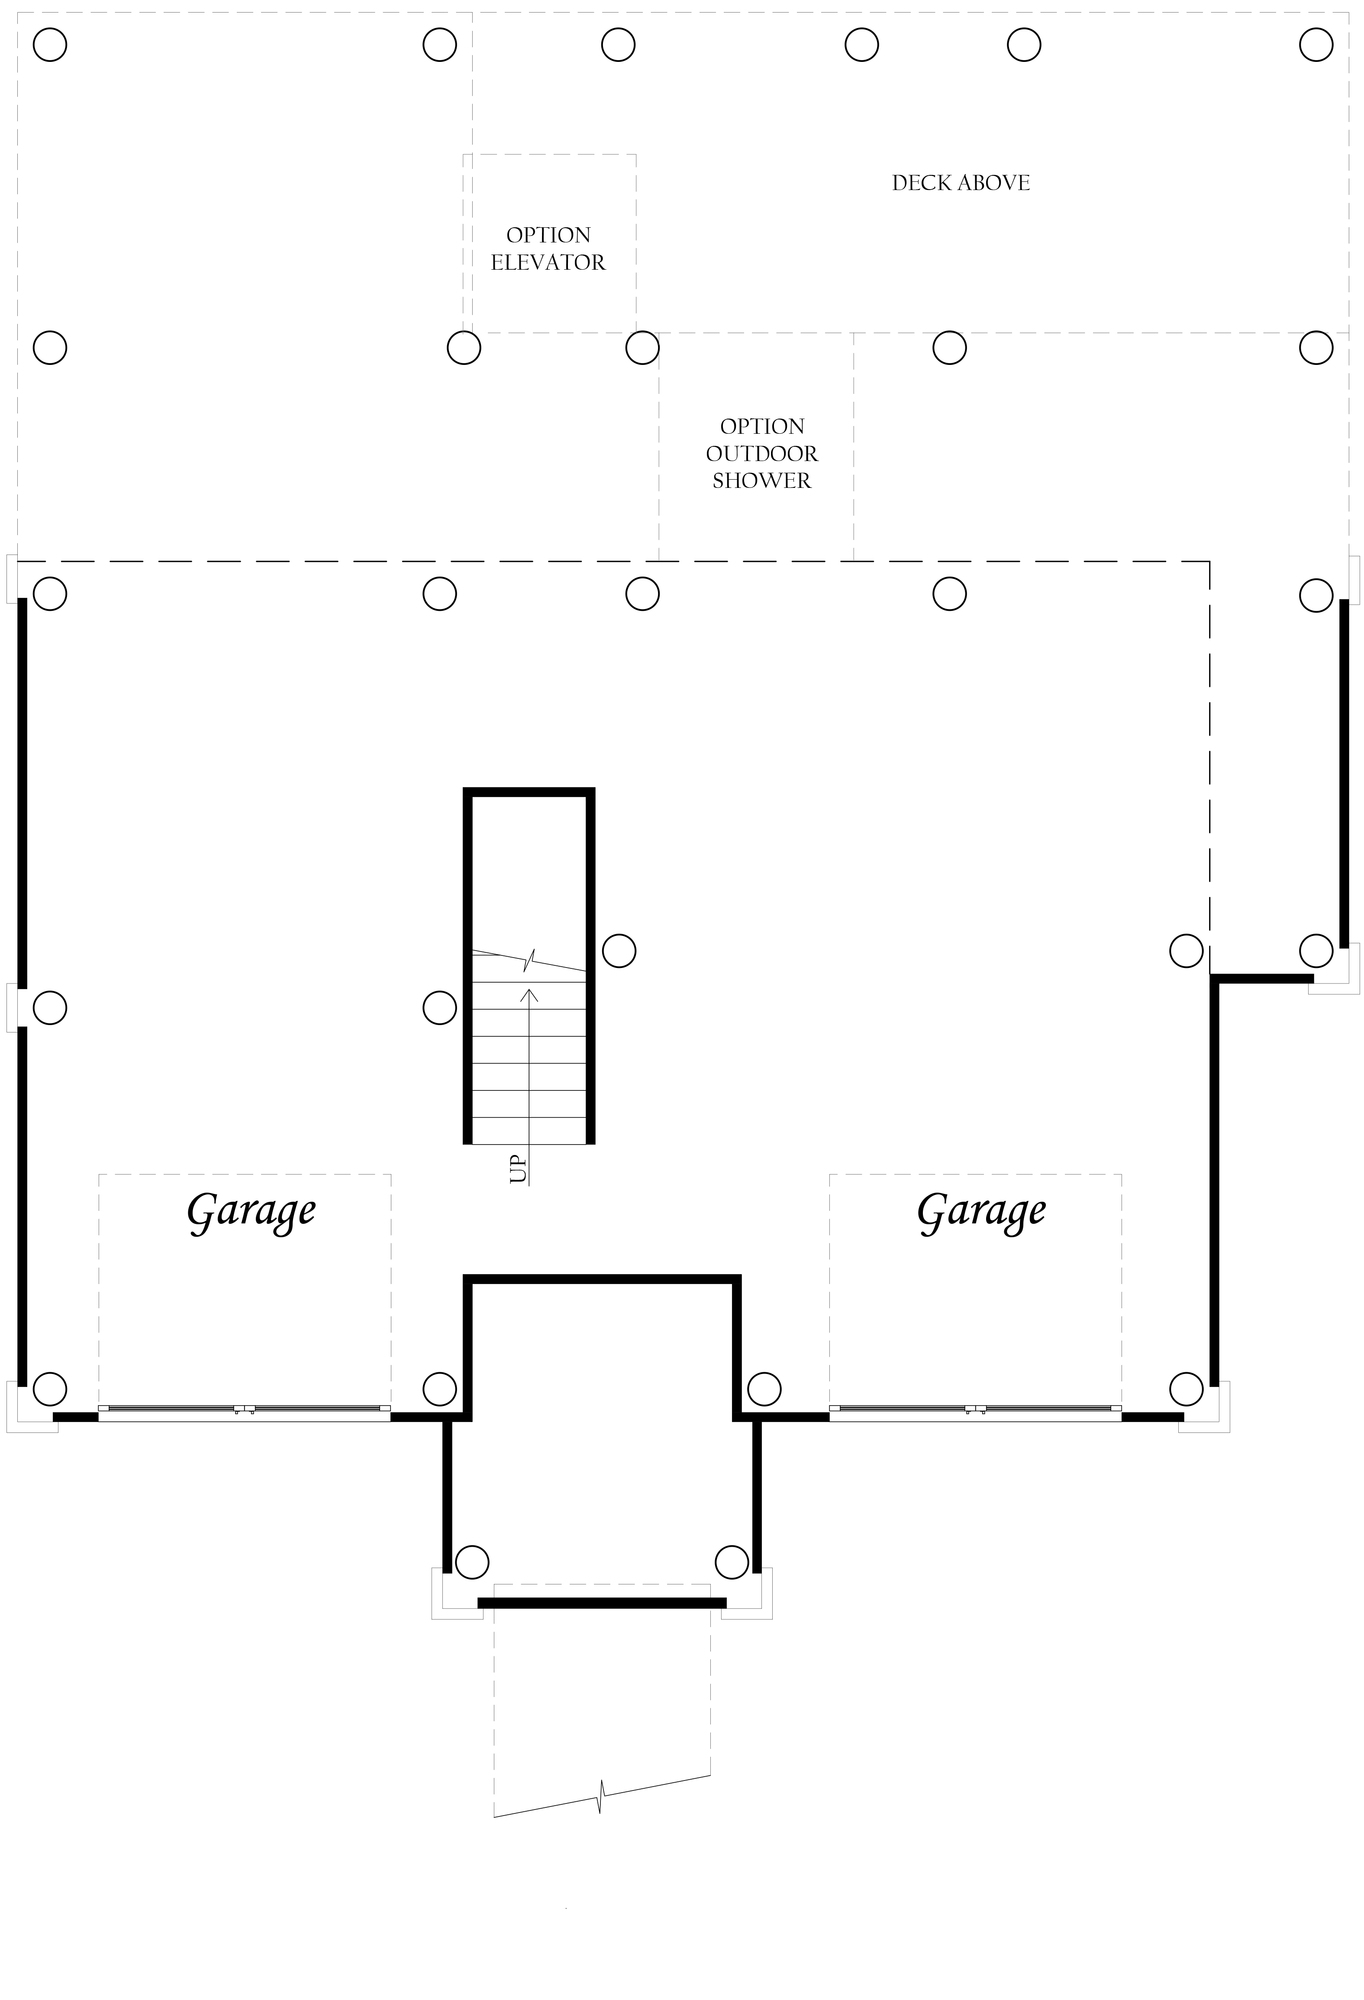 Bayberry - Master - Floor Plan - Ground Level - Full